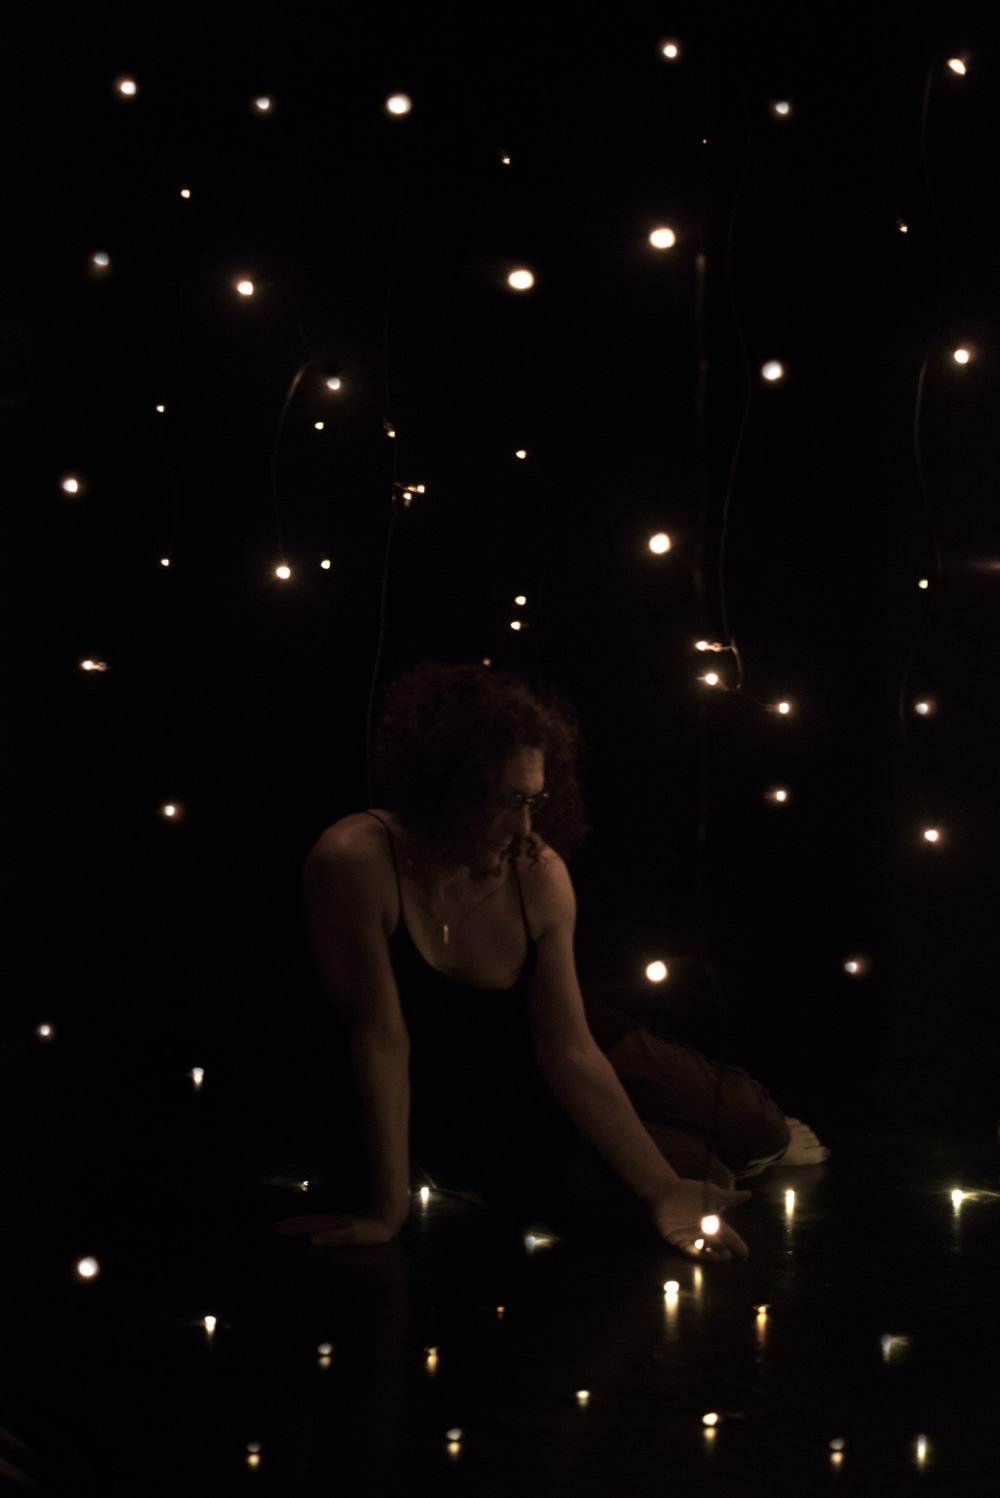 A woman sits in dark room surrounded by tiny lights. She holds one of the lights in an open hand.